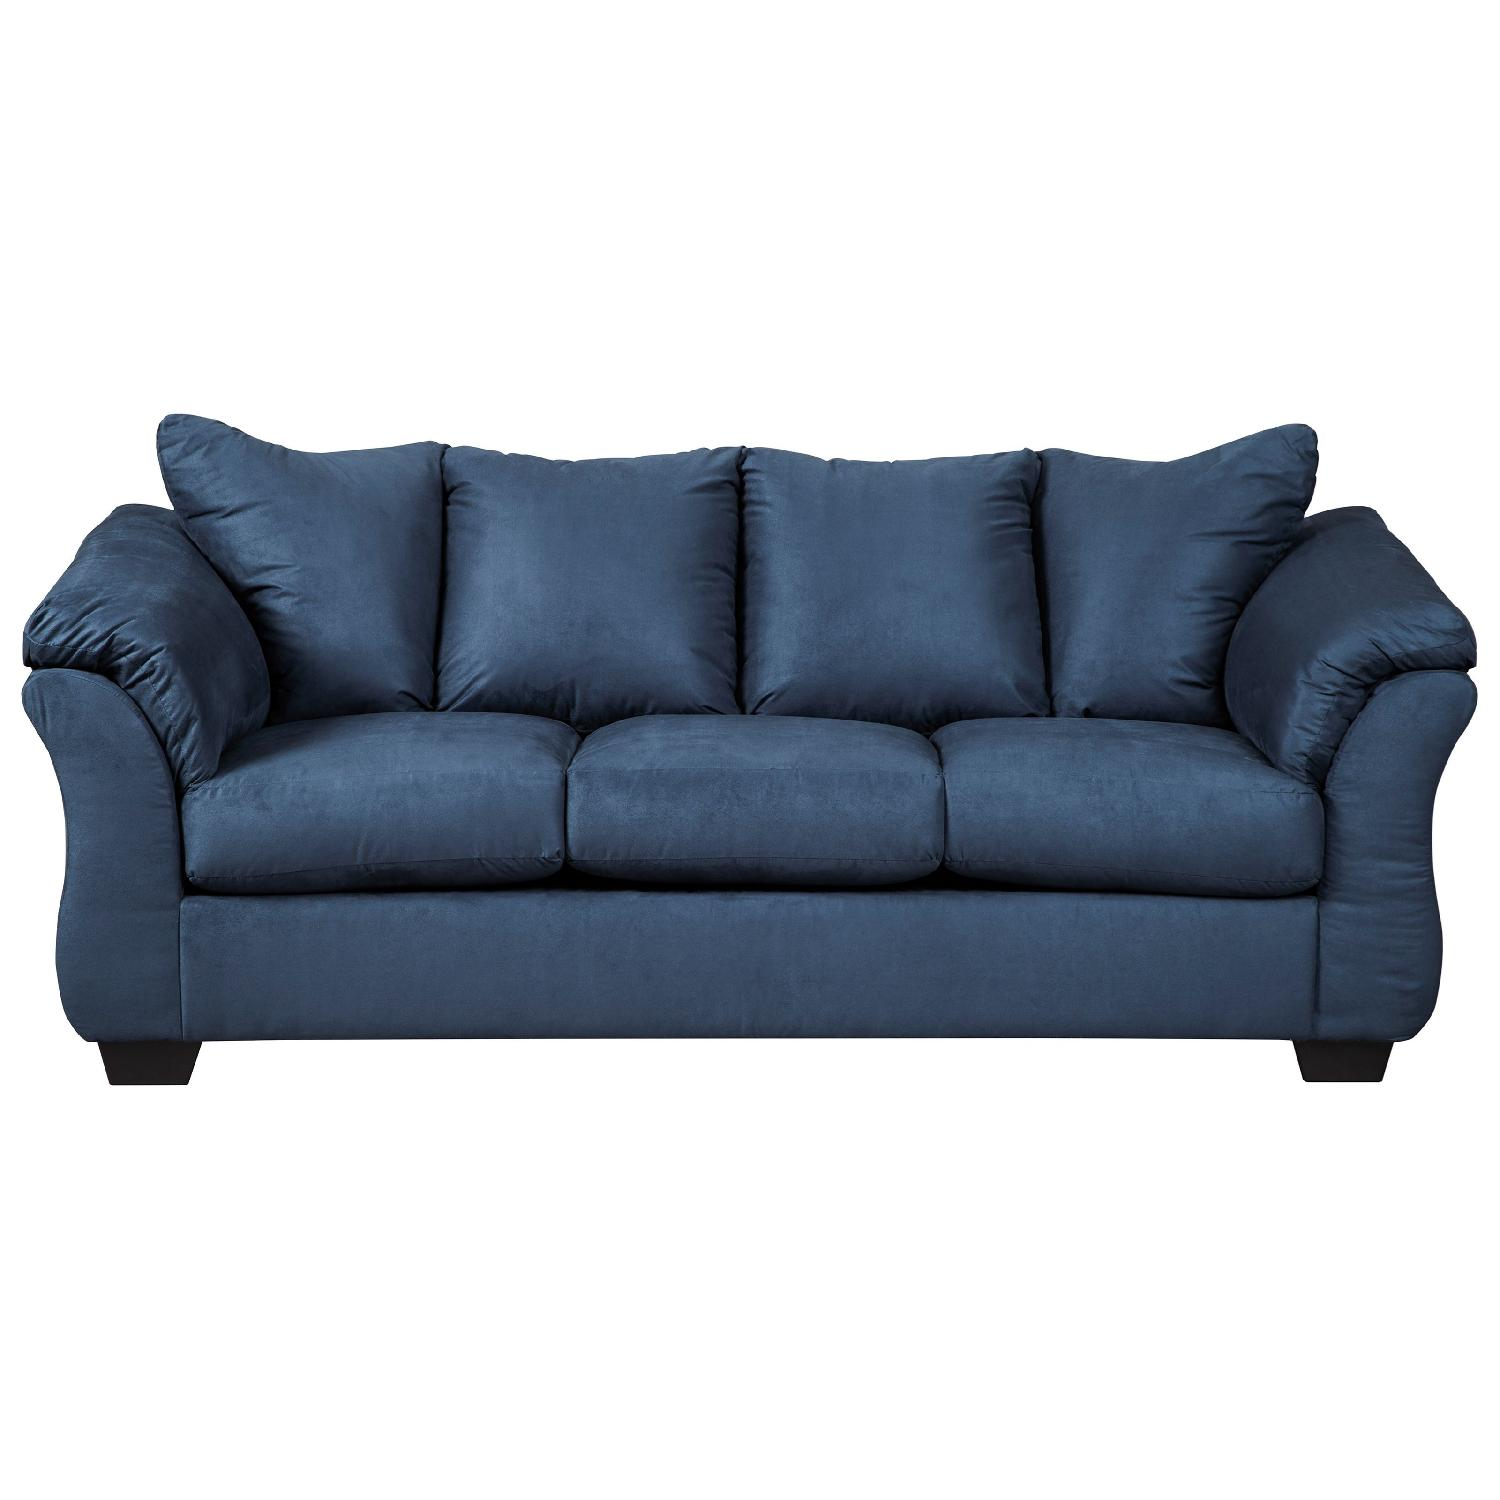 Ashley darcy blue full sofa sleeper aptdeco for Ashley sleeper sofa